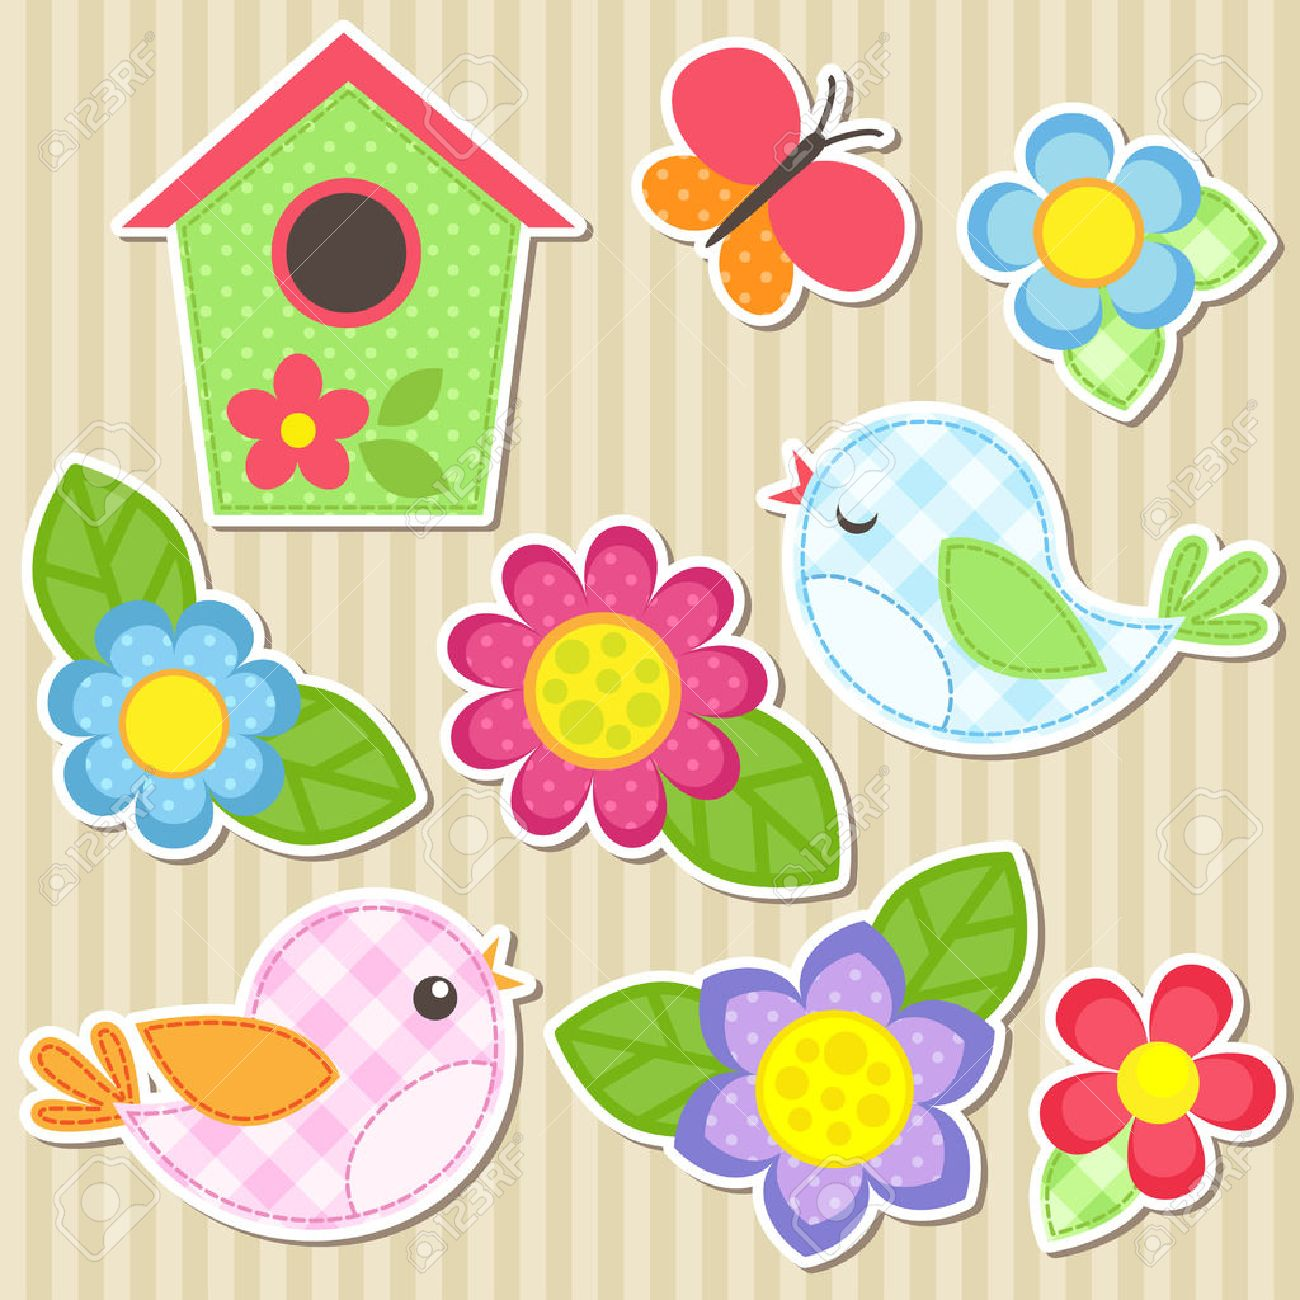 Set of vector flowers, birds, butterfly and birdhouse - 42068521